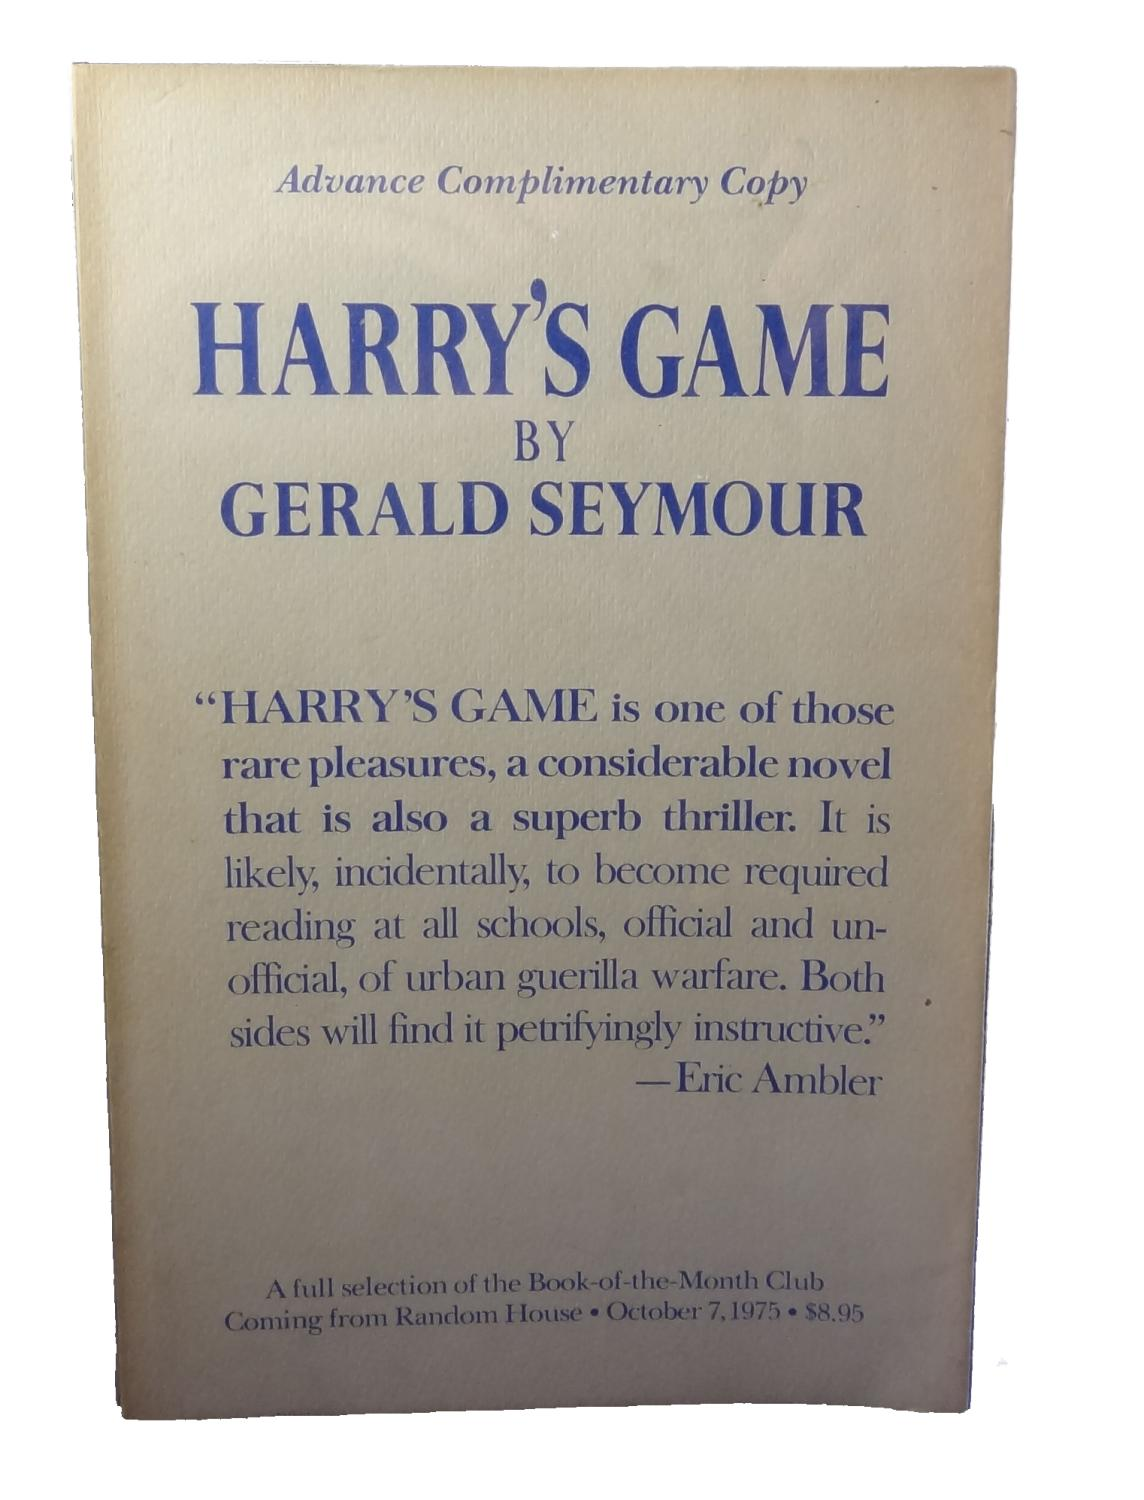 Harry's Game Seymour, Gerald